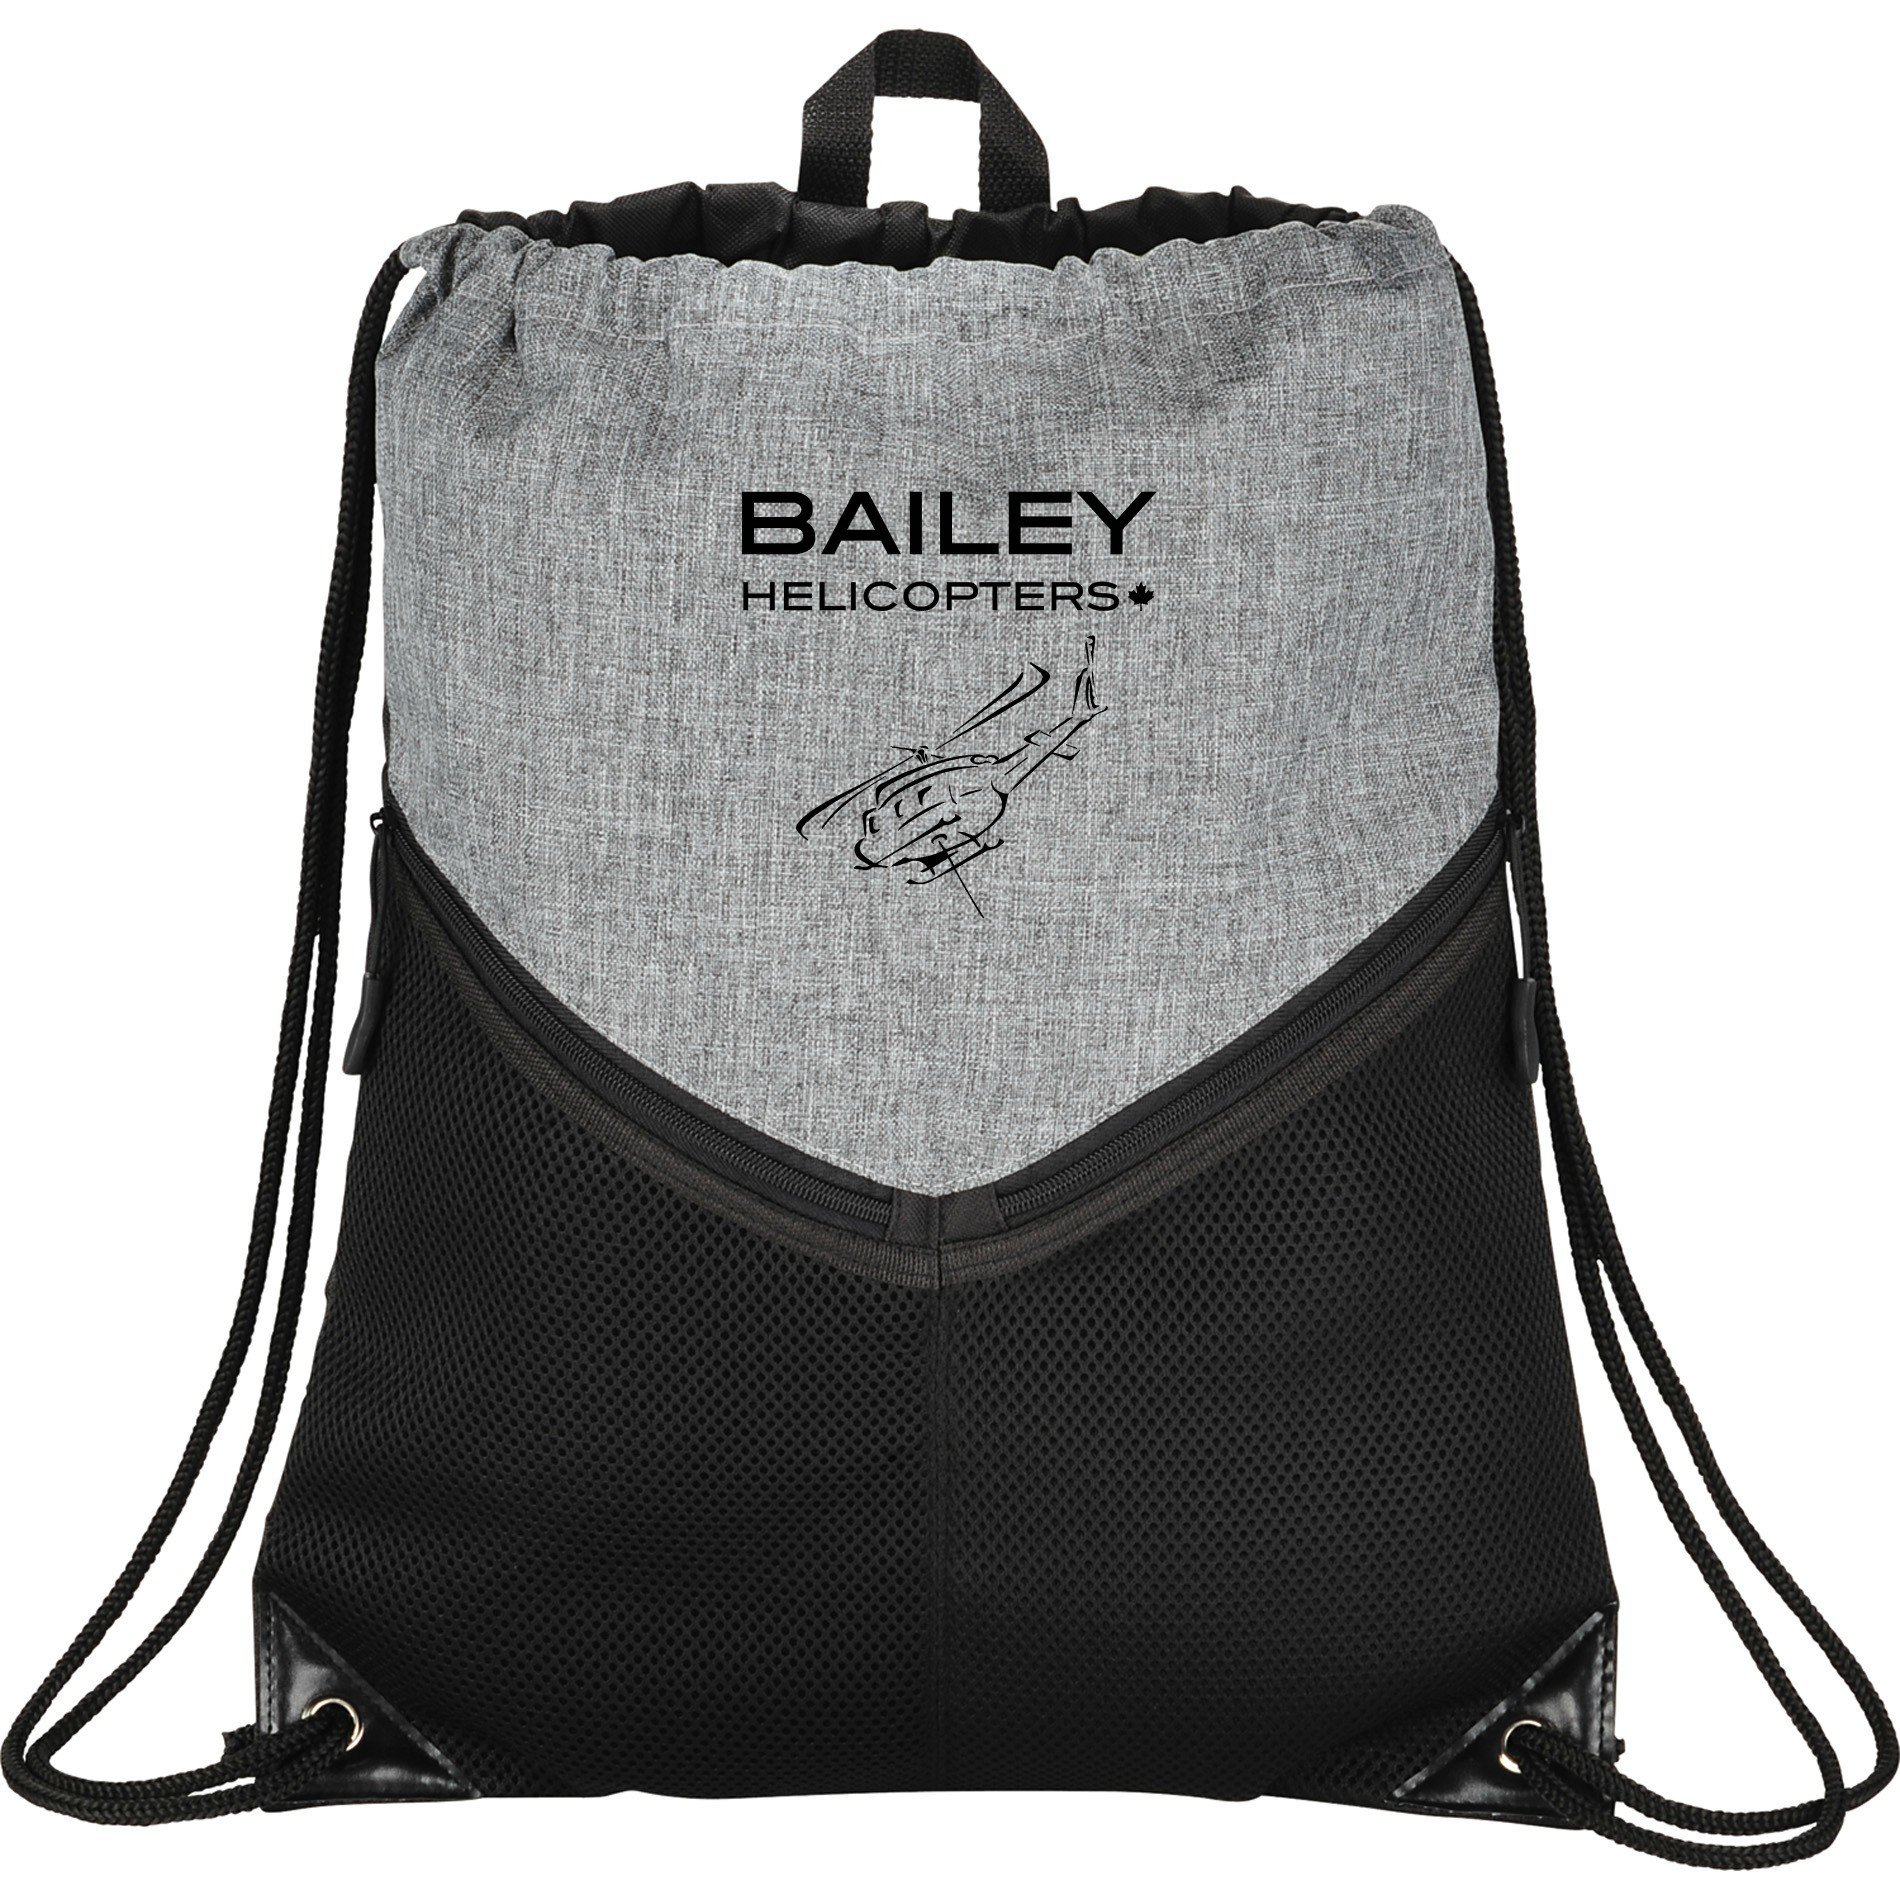 Bailey Helicopters Drawstring Sportspack Graphite/Black